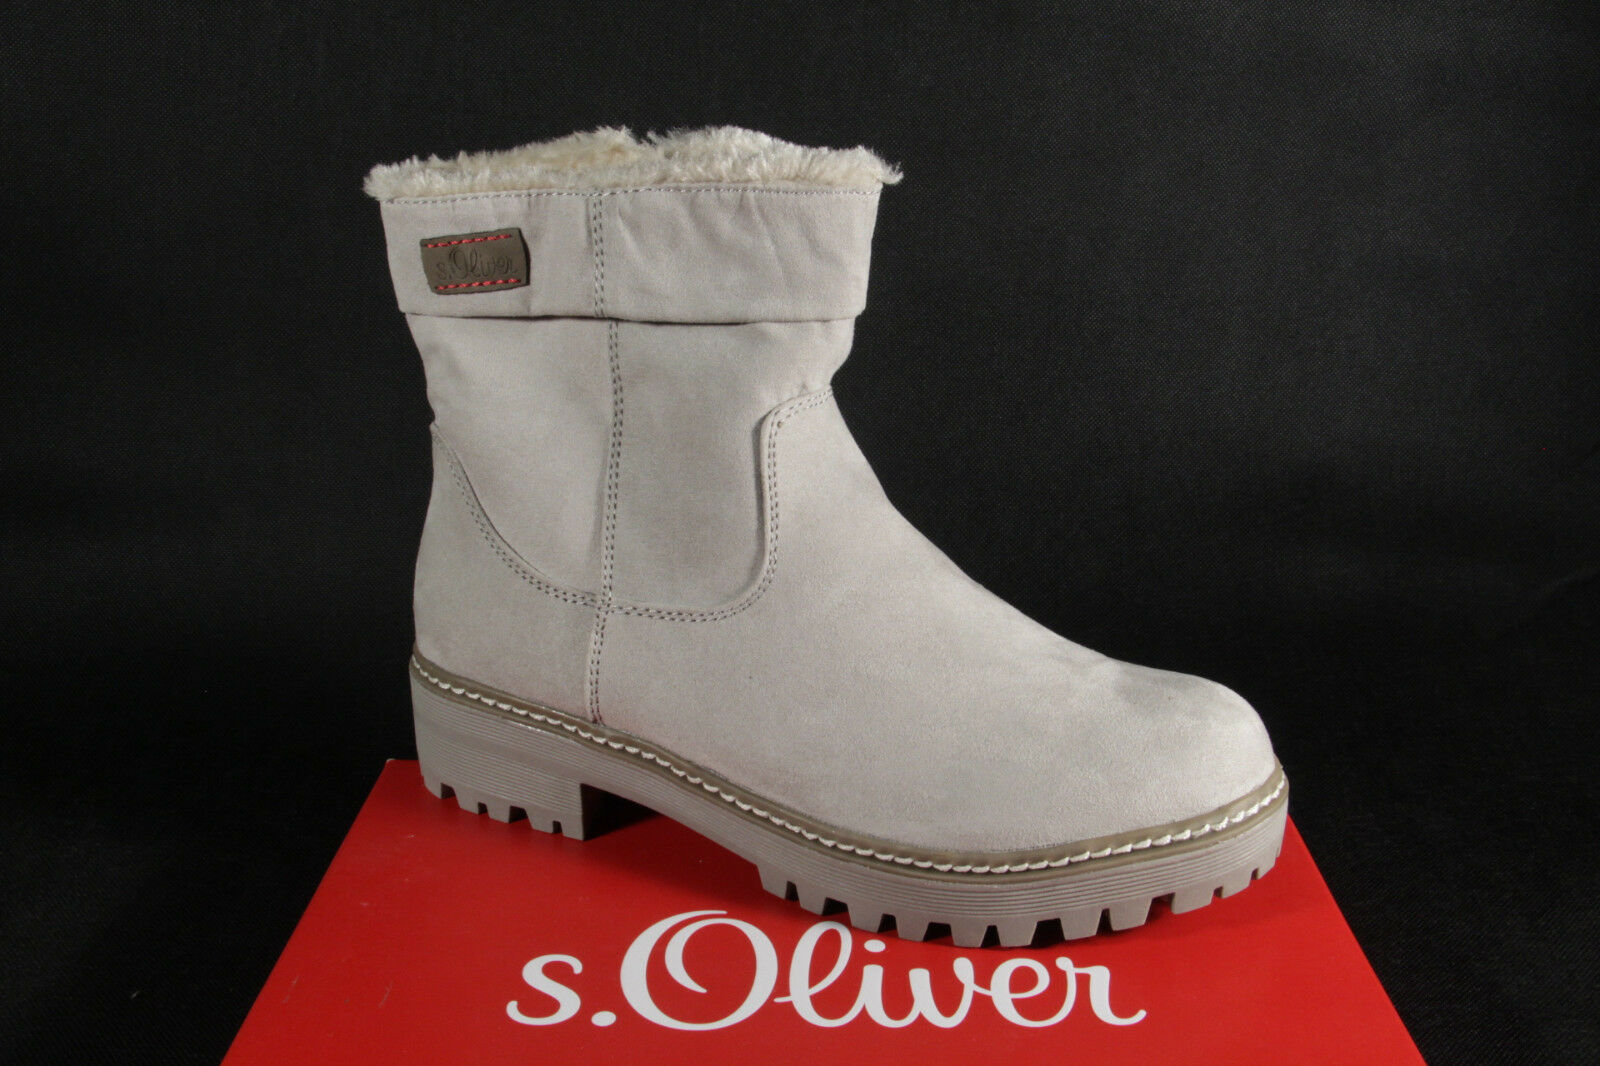 S.OLIVER Women's Boots, Ankle Boots, Boots Winter Boots Grey 26475 New